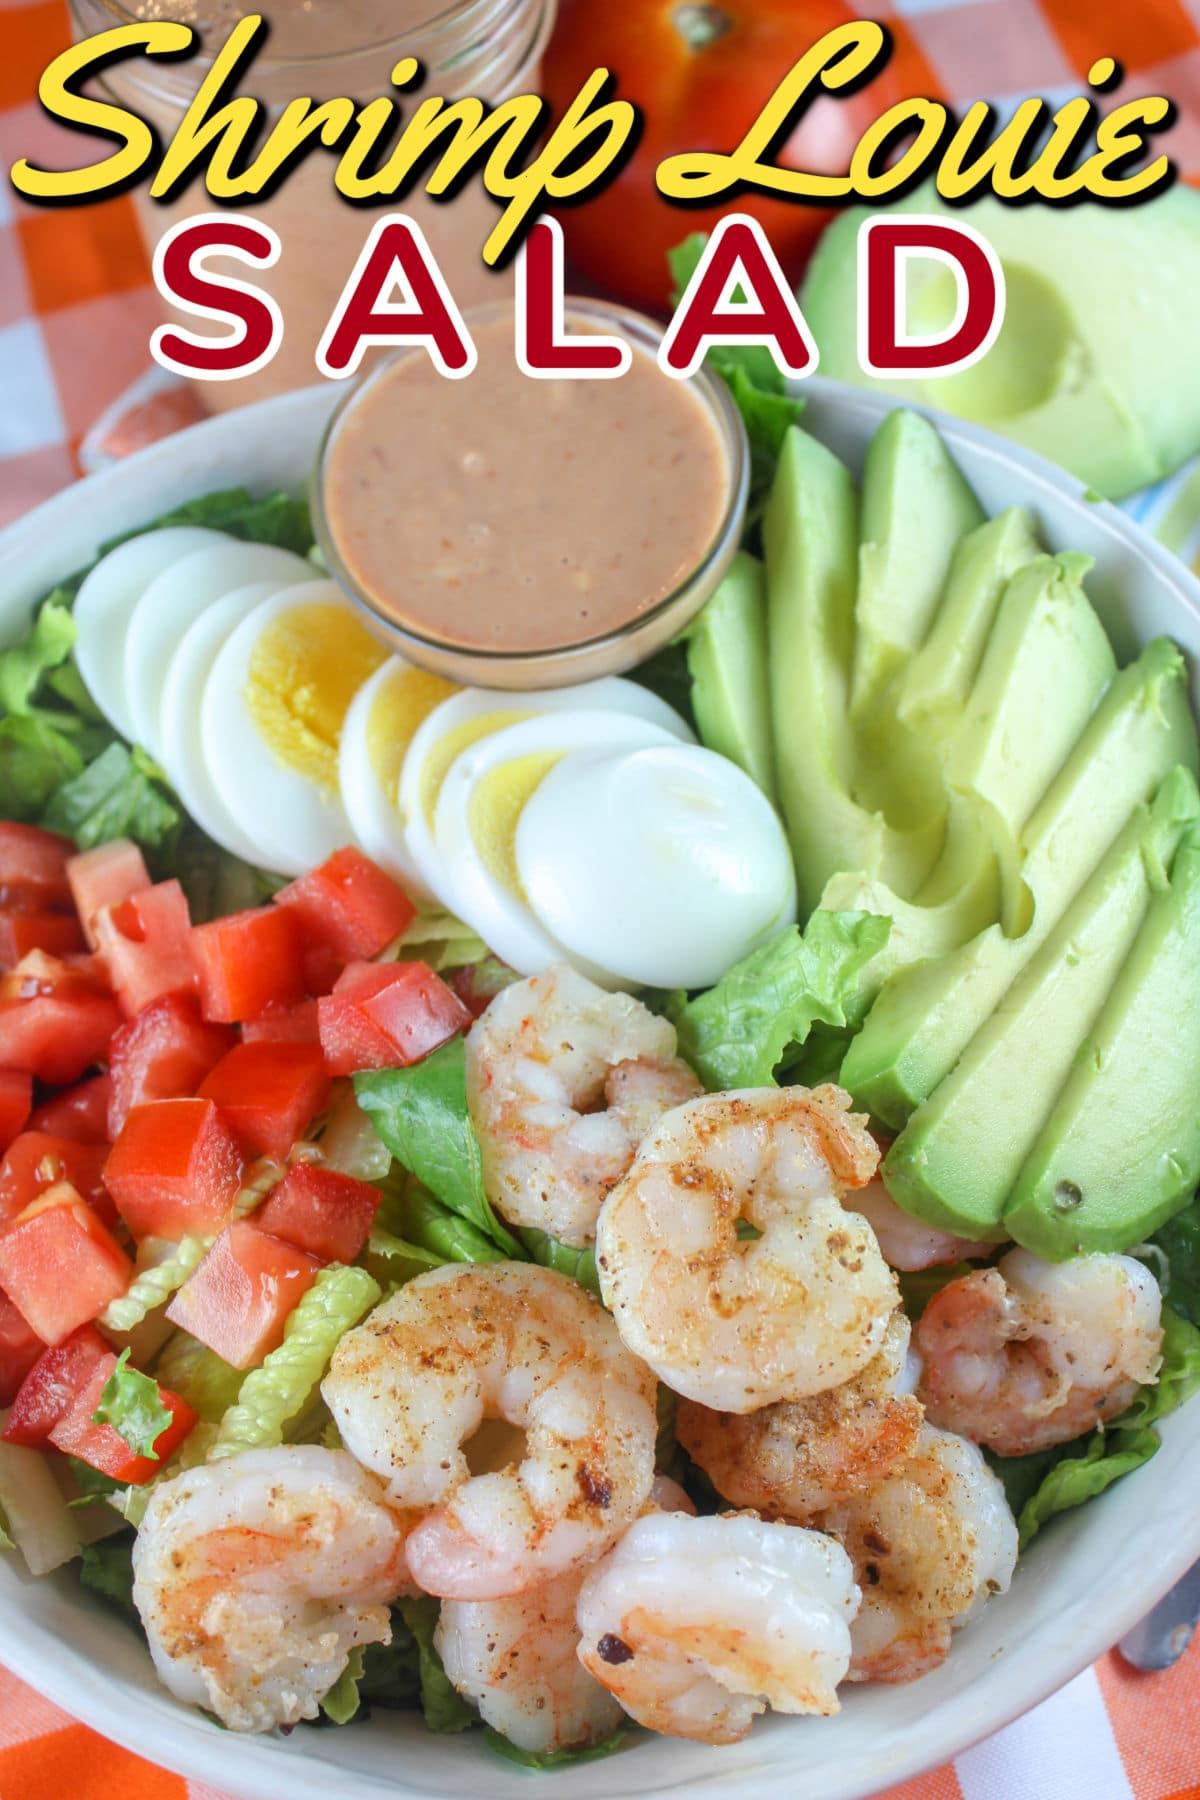 Shrimp Louie is a salad you'll often find in California made with shrimp, lettuce, egg, avocado and tomato. The simple dressing is similar to Thousand Island dressing and super tasty! via @foodhussy